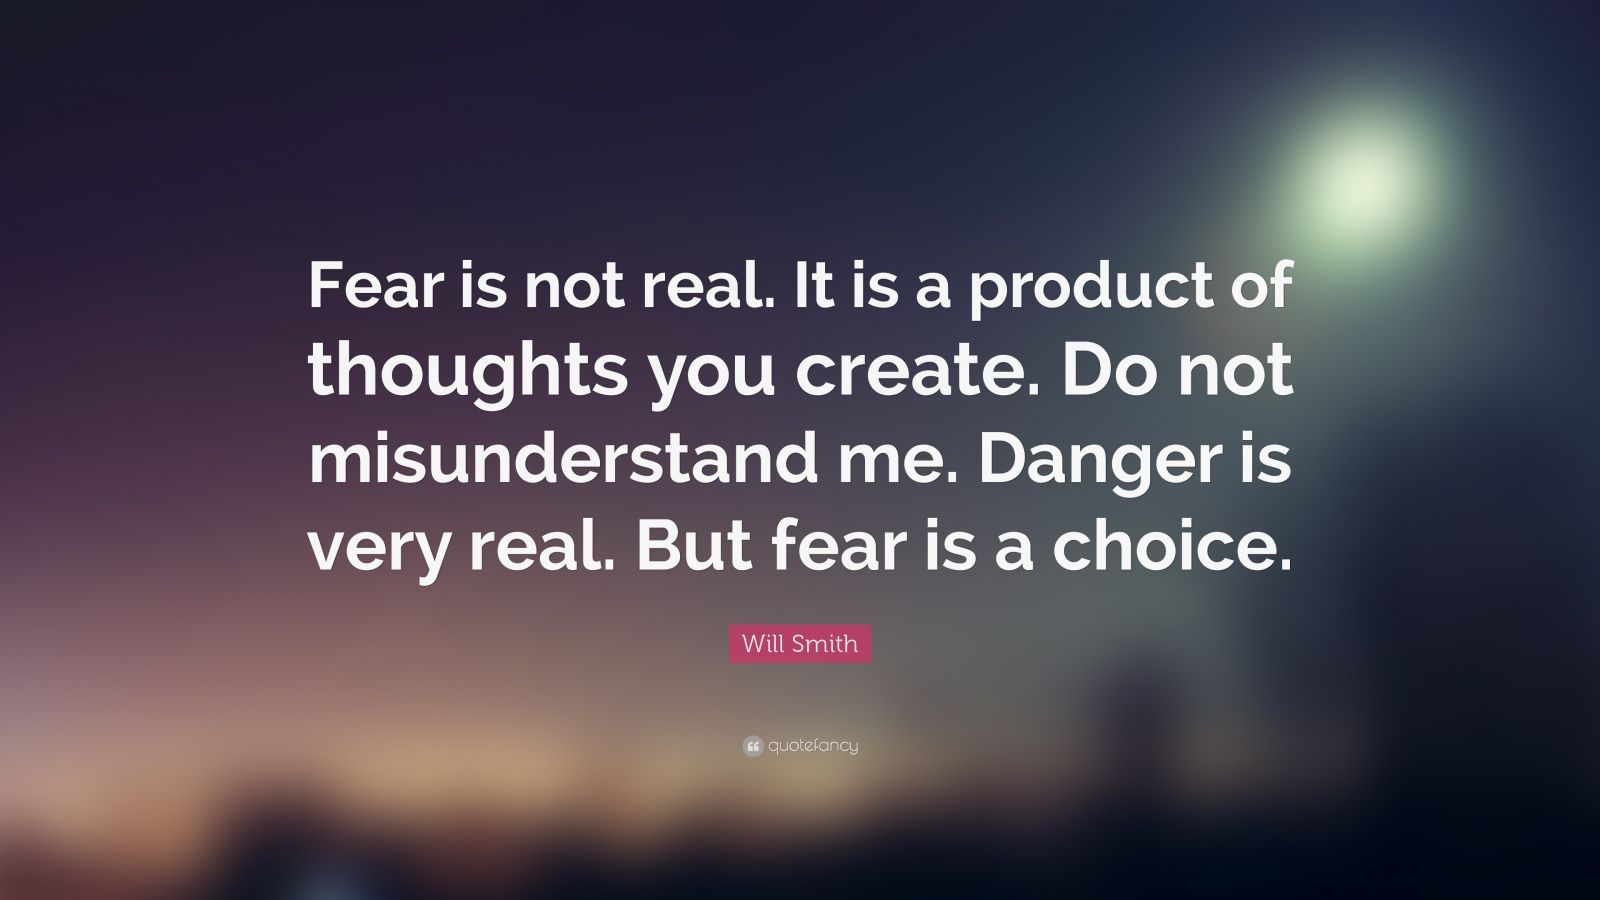 Motivational Basketball Quotes Wallpaper Will Smith Quote Fear Is Not Real It Is A Product Of